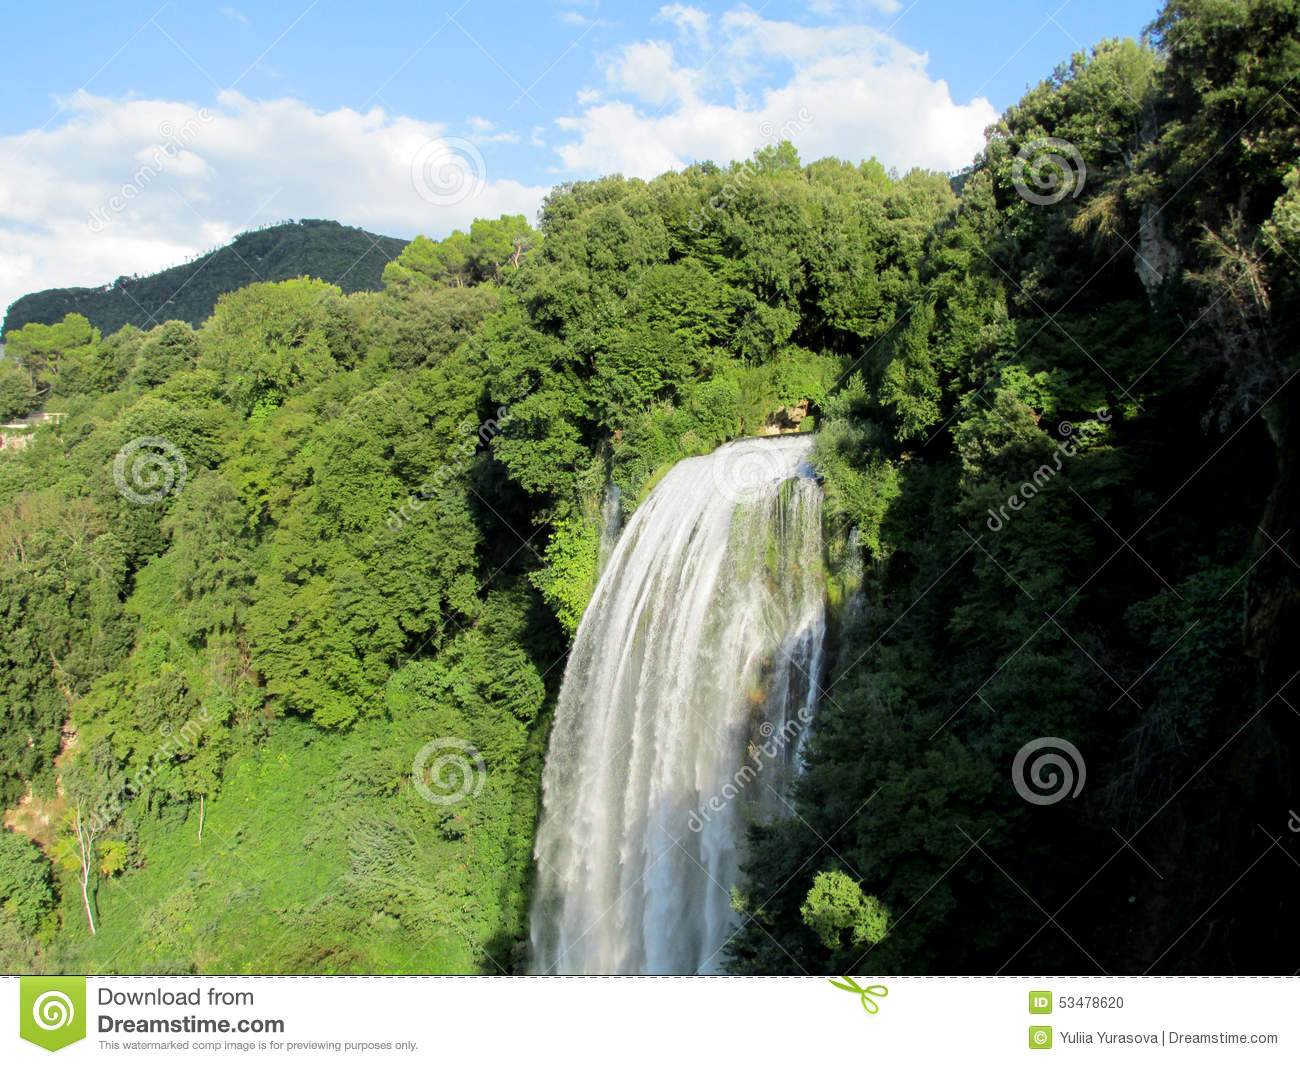 Cascata Delle Marmore clipart #11, Download drawings